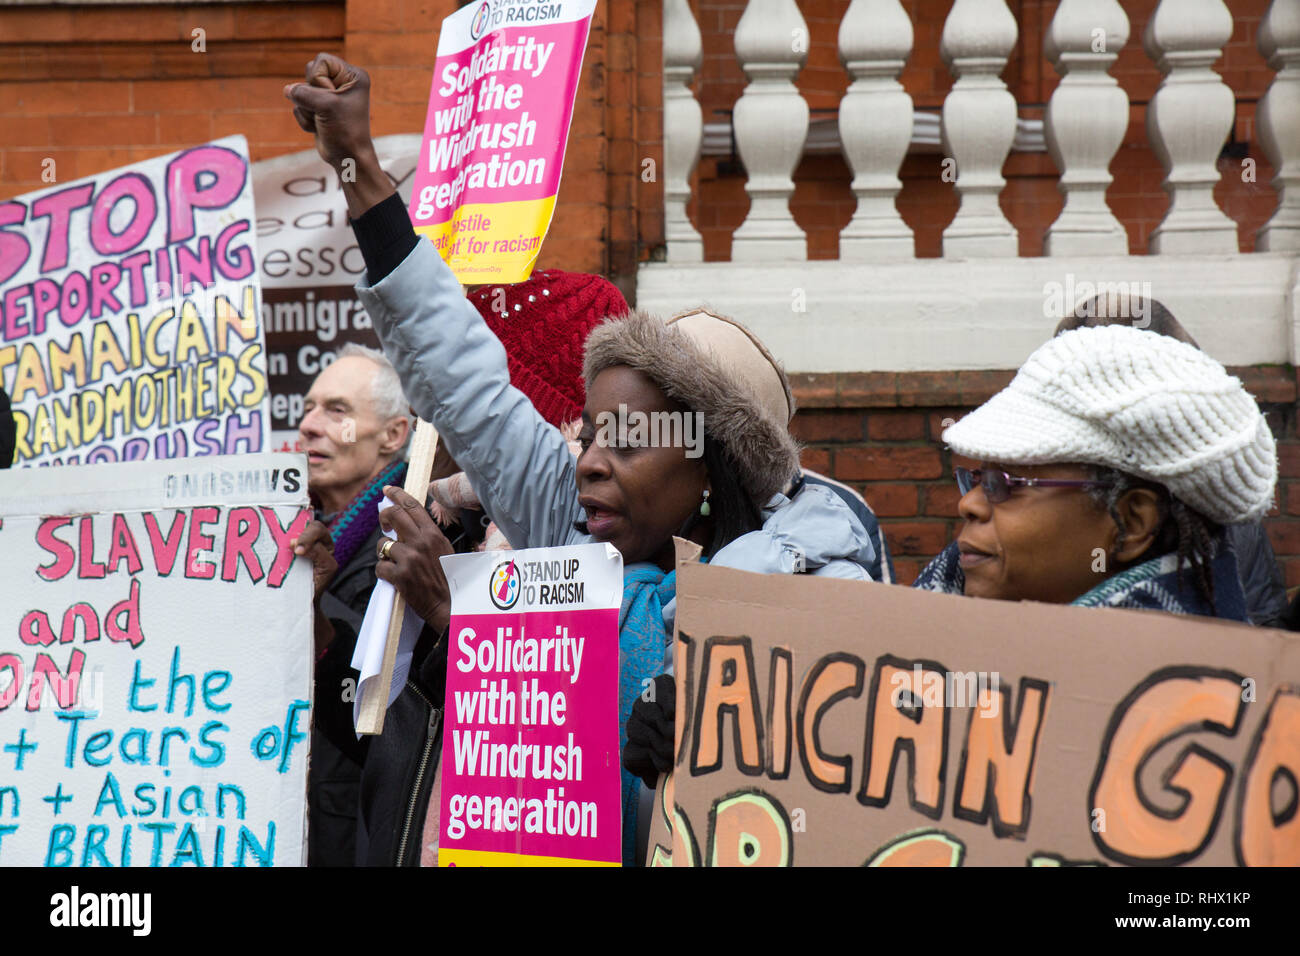 London, UK. 4th Feb, 2019. Protesters assemble outside the Jamaican High Commision to protest against the deportation of British Jamaican's via charter flights . Credit: George Cracknell Wright/Alamy Live News - Stock Image